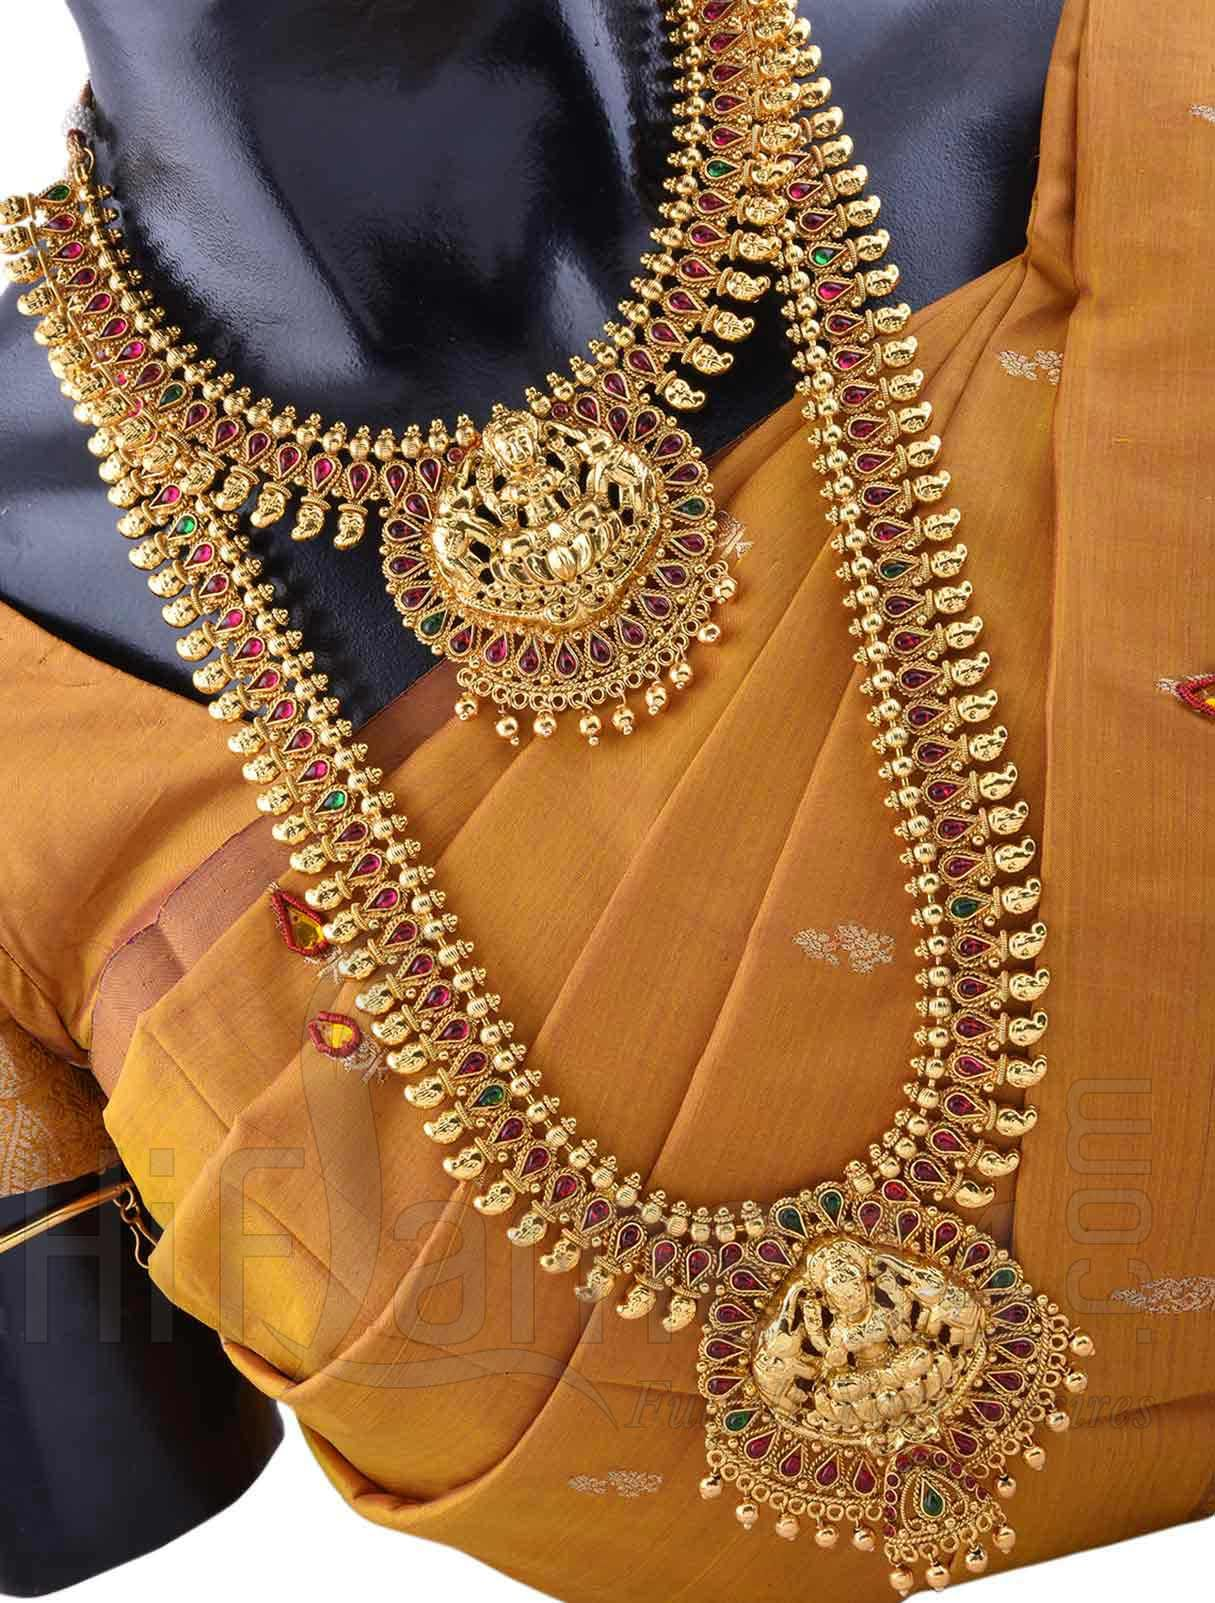 Rent Wedding Jewellery Set With Ashta Lakshmi Design Online Free Delivery And Pickup Wedding Jewelry Sets Gold Models Wedding Jewelry